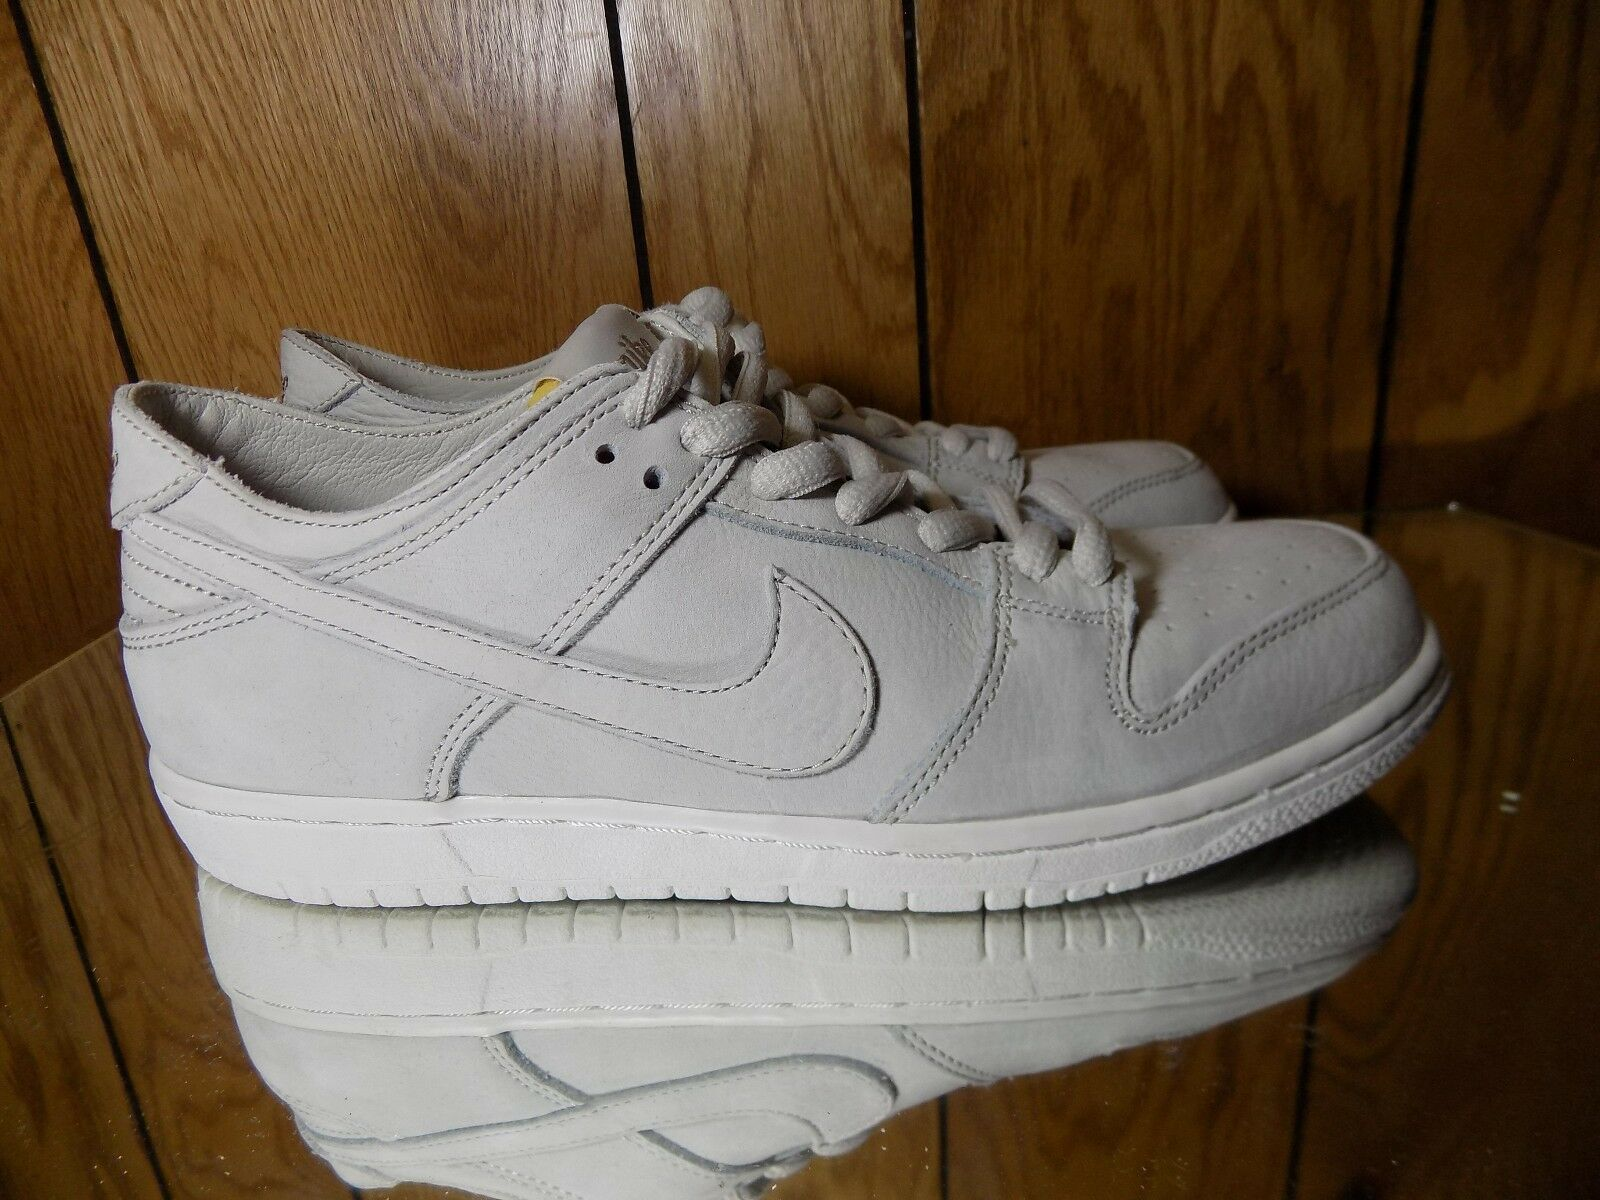 Nike Zoom Dunk Low Pro Deconstruct Men's Sneakers Sports Shoes AA4275-001 s 12